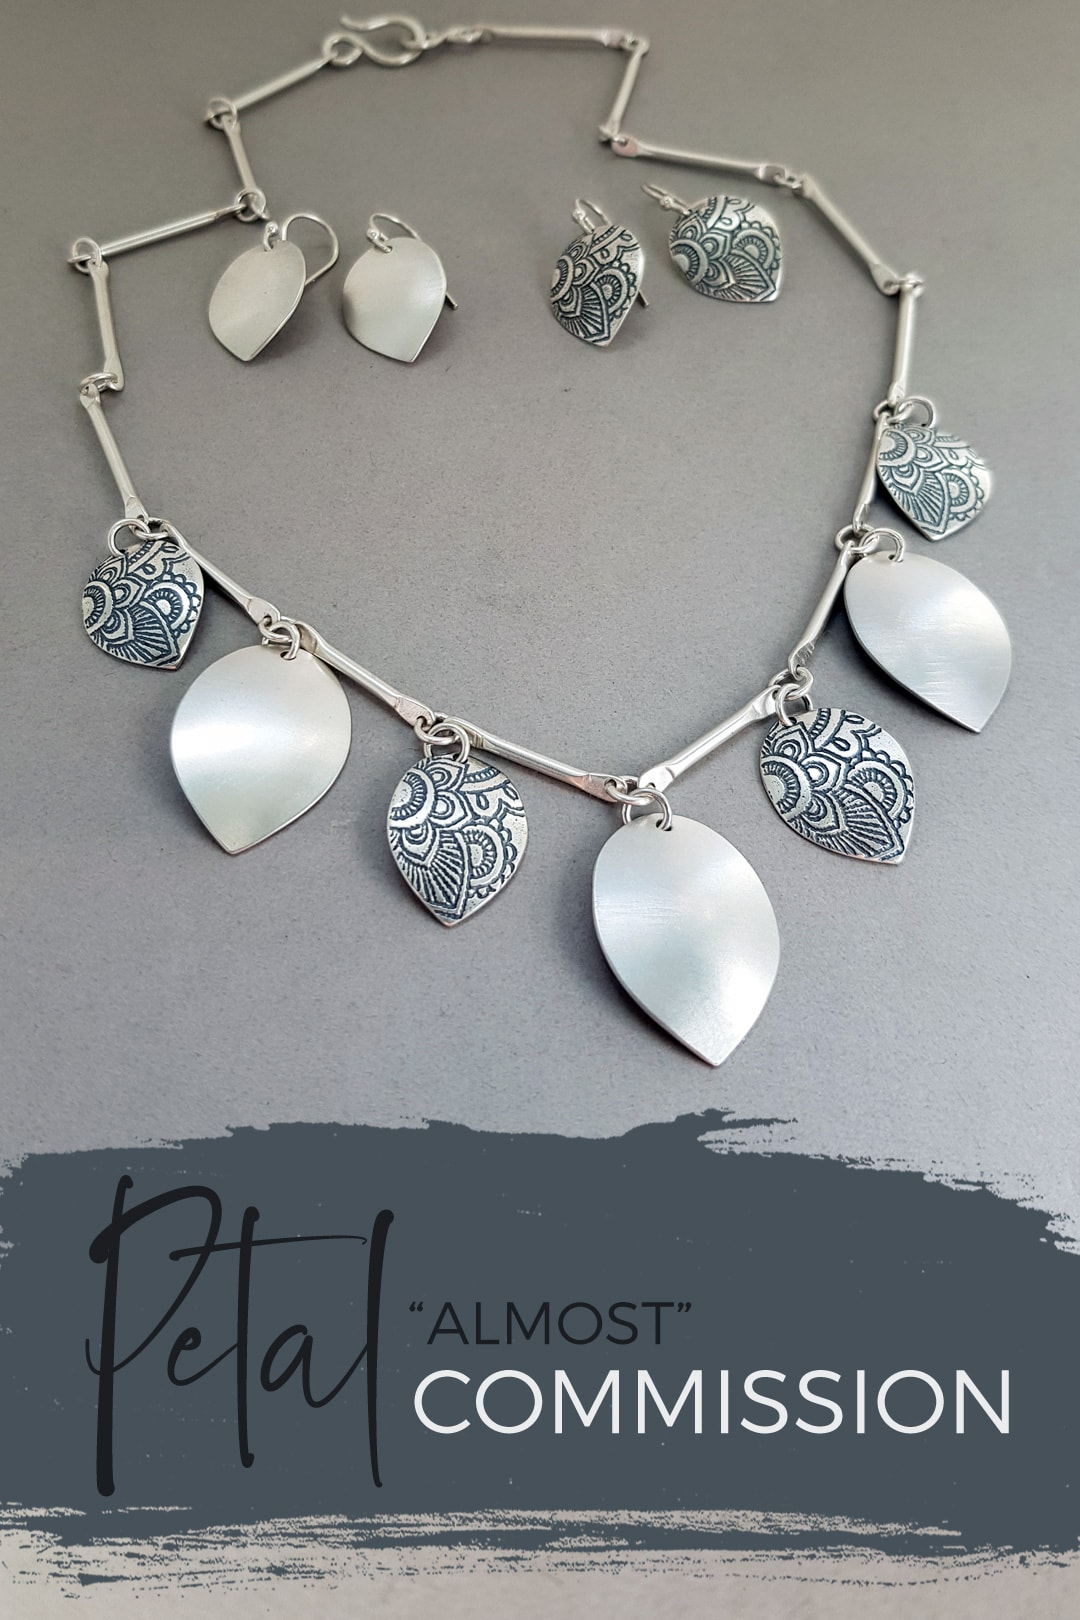 Petal brushed silver necklace commission with Mehndi petals